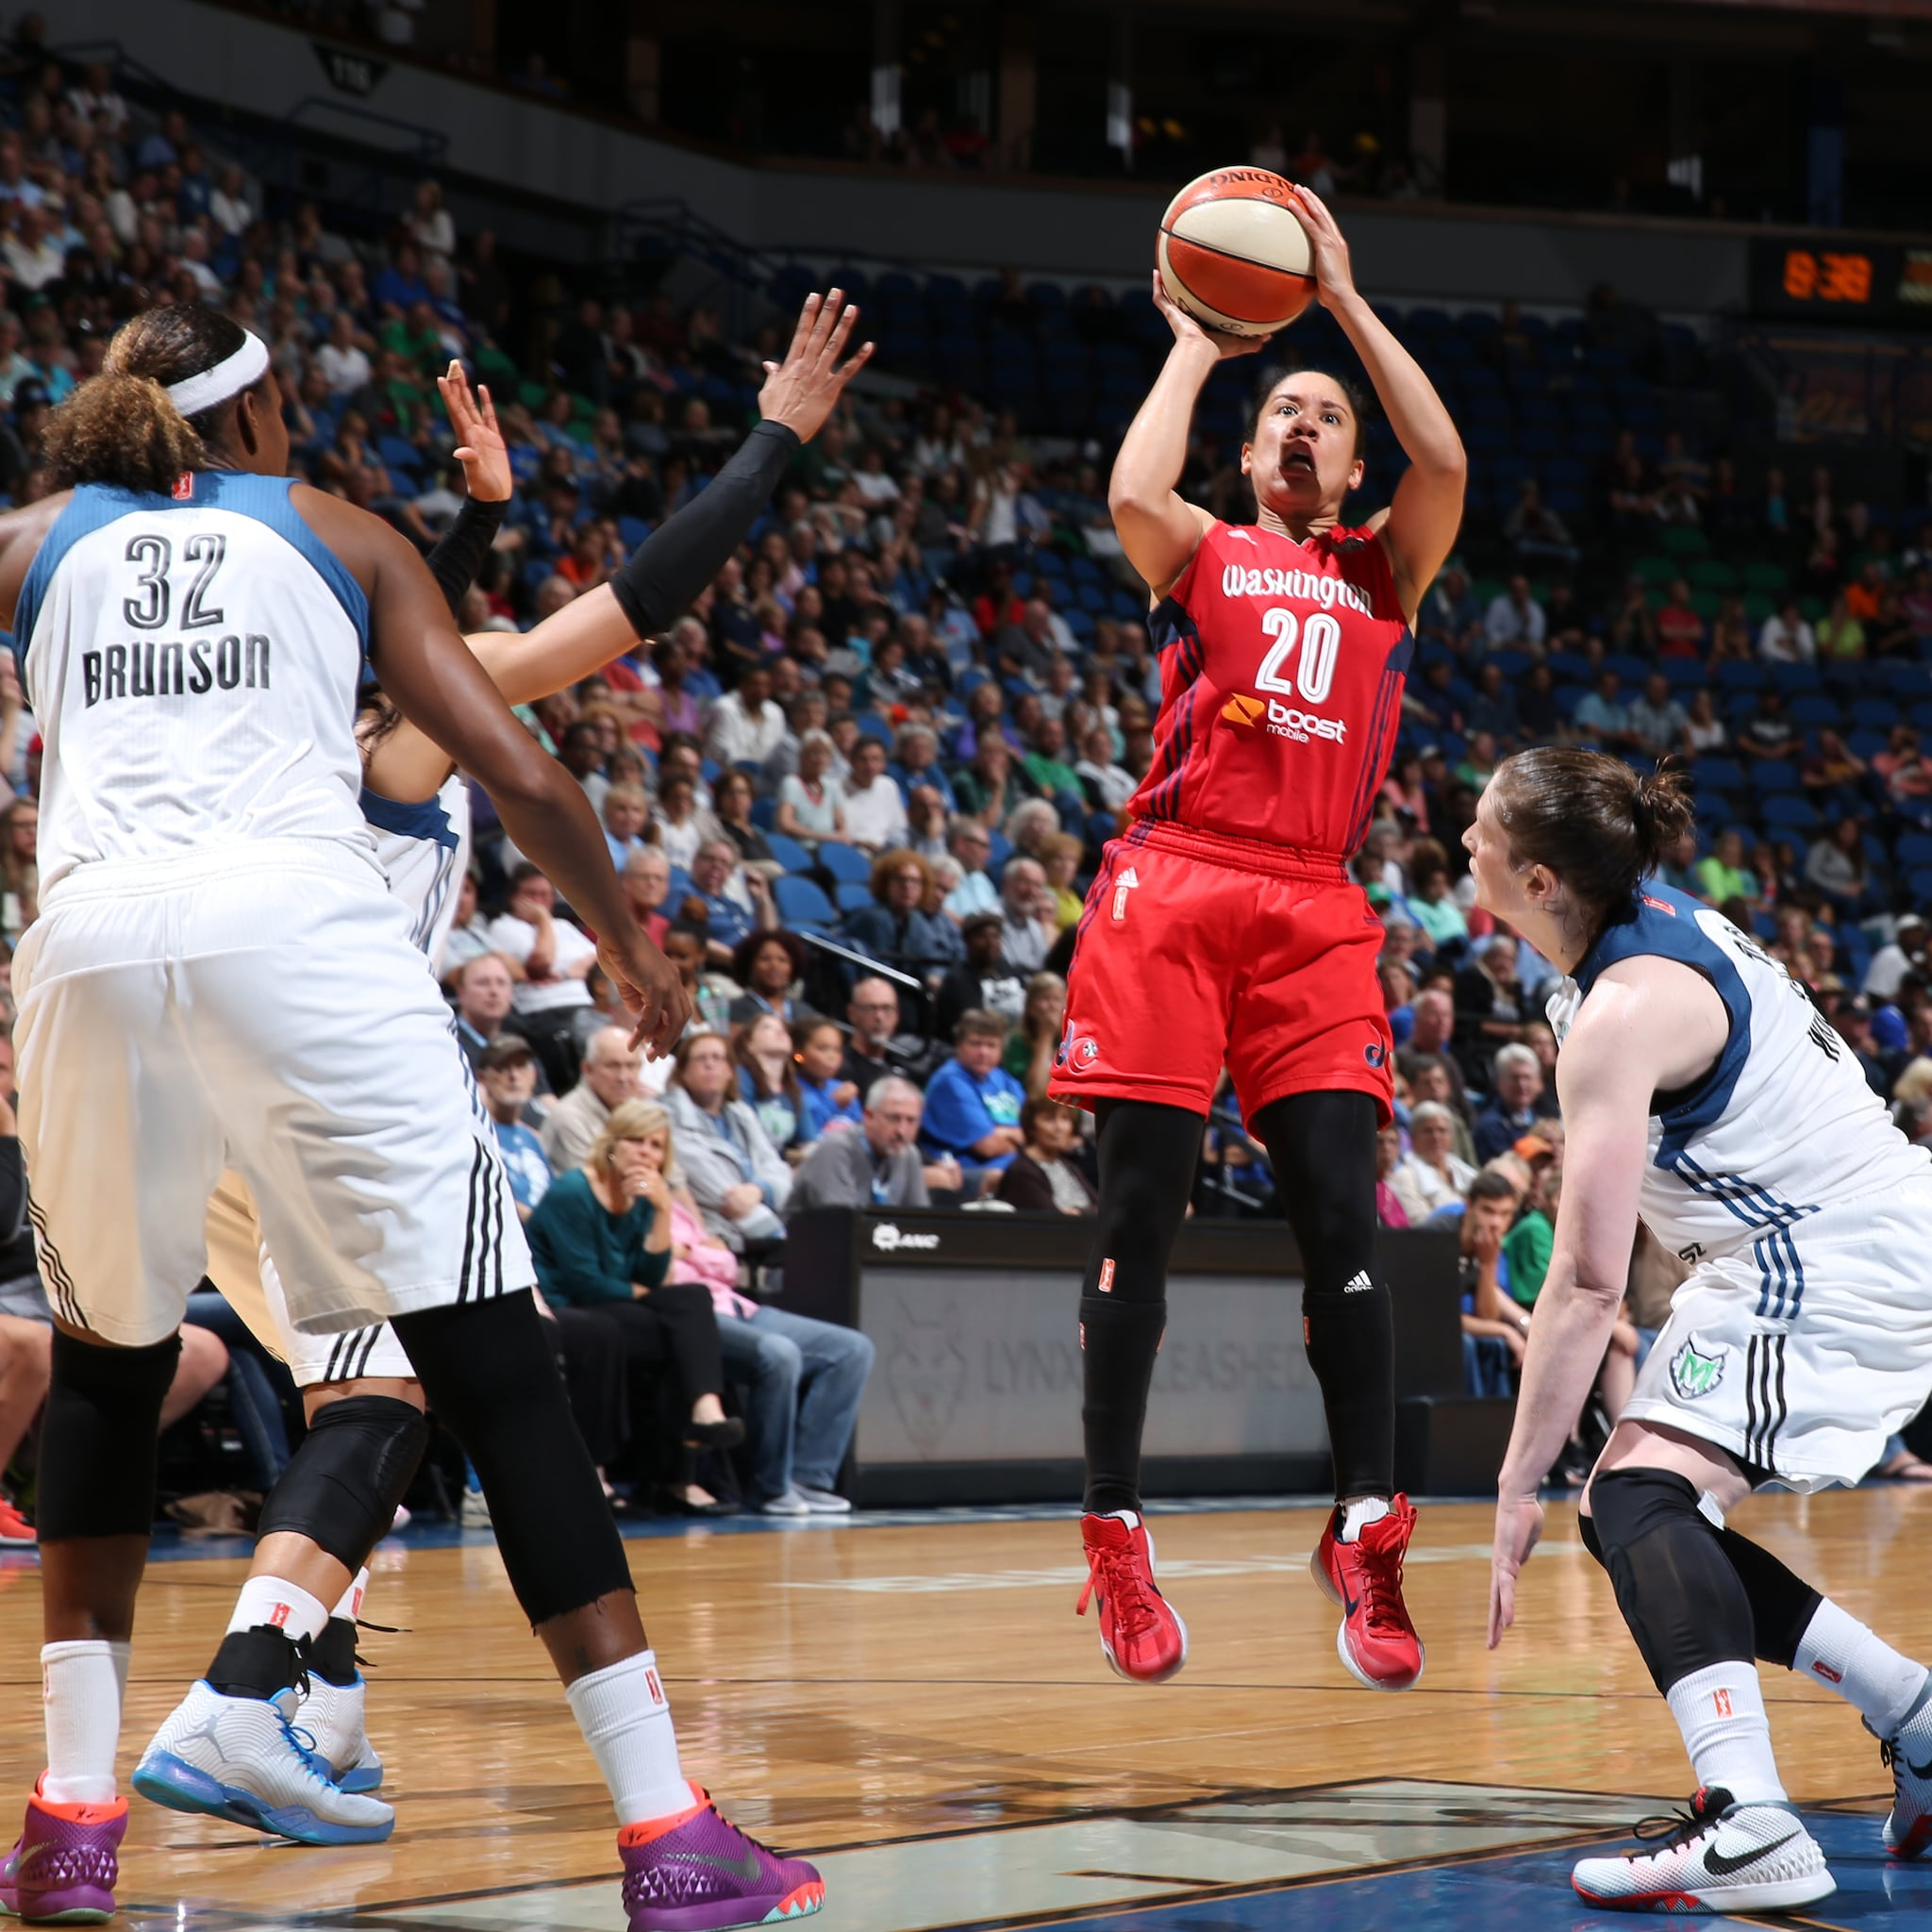 Mystics guard Kara Lawson was making seemingly every shot she put up, pouring in a game-high 20 points to go with her three rebounds and three assists.